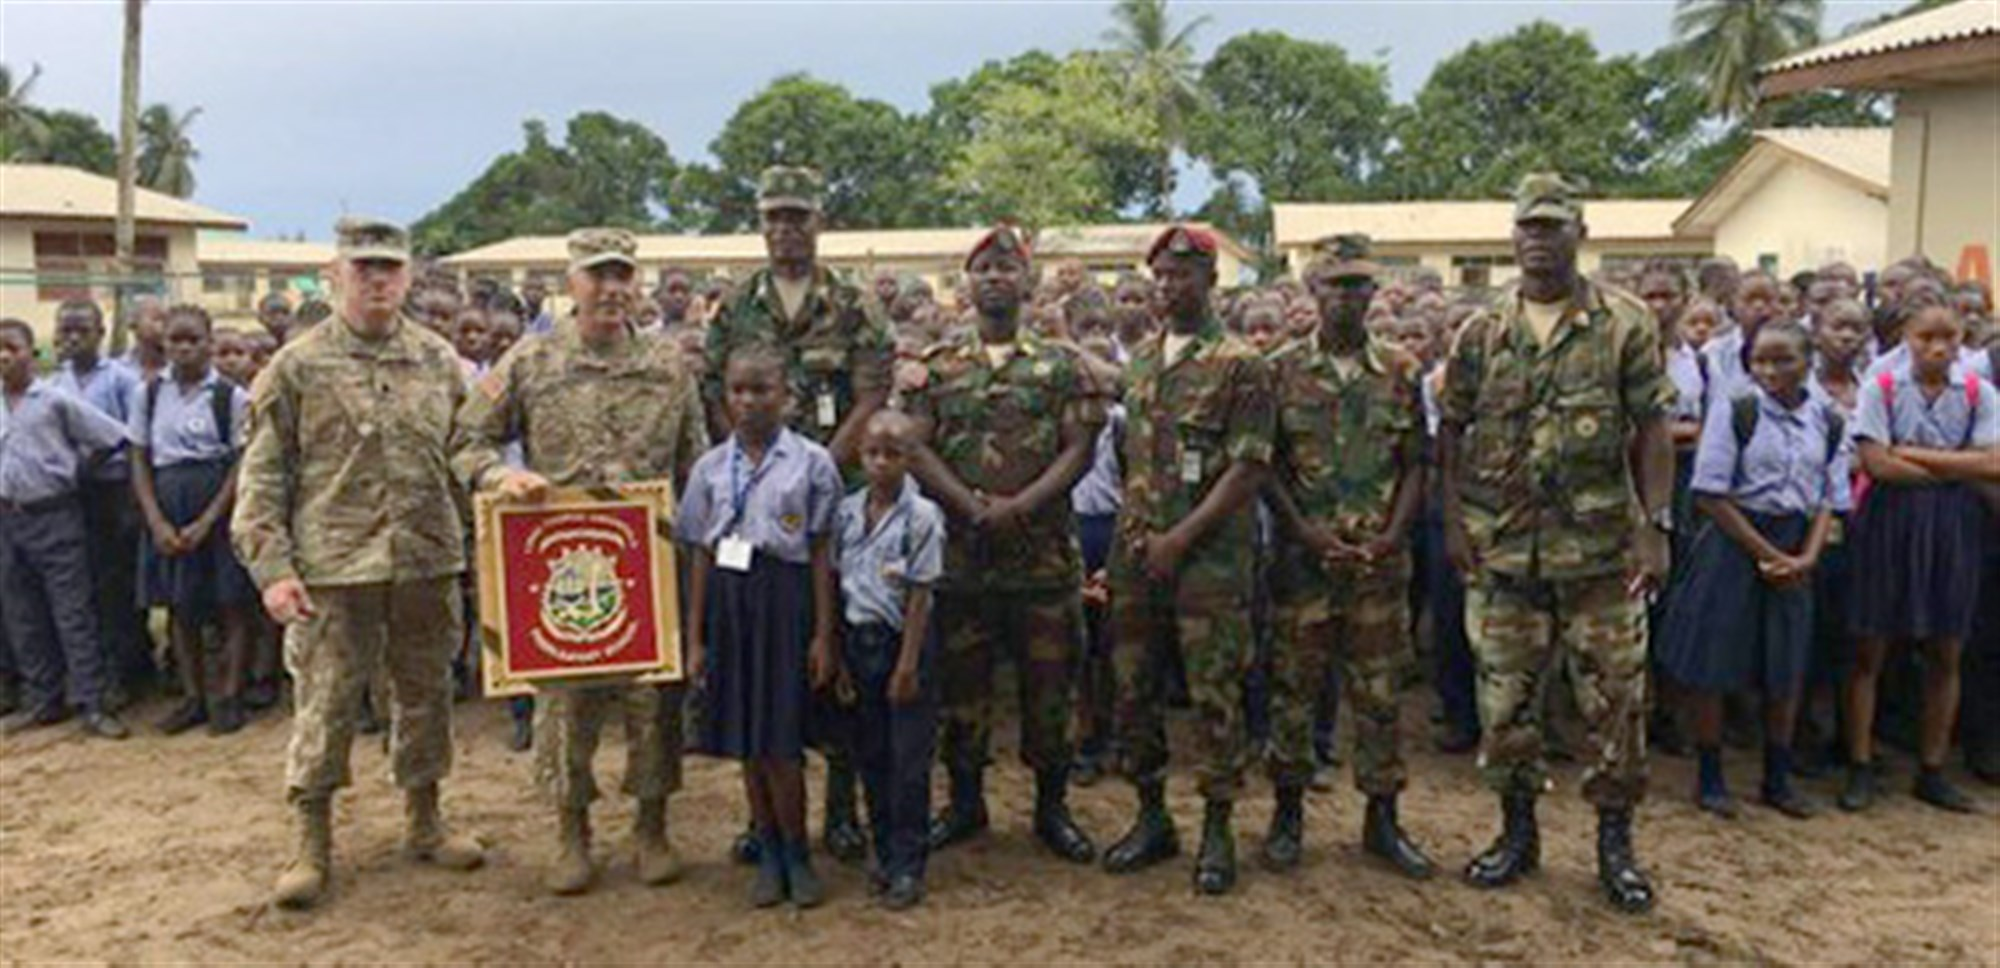 MONROVIA, Liberia --During a visit to the Linda Thomas Greenfield Preparatory School, Maj. Gen. Gregory Vadnais, the adjutant general of the Michigan National Guard, was presented with a plaque in appreciation of his support to the Edward Binyah Kesselly facility and the families of the Armed Forces of Liberia. The children greeted him in their classrooms and showed him what they were learning. (Photo courtesy of Michigan National Guard)